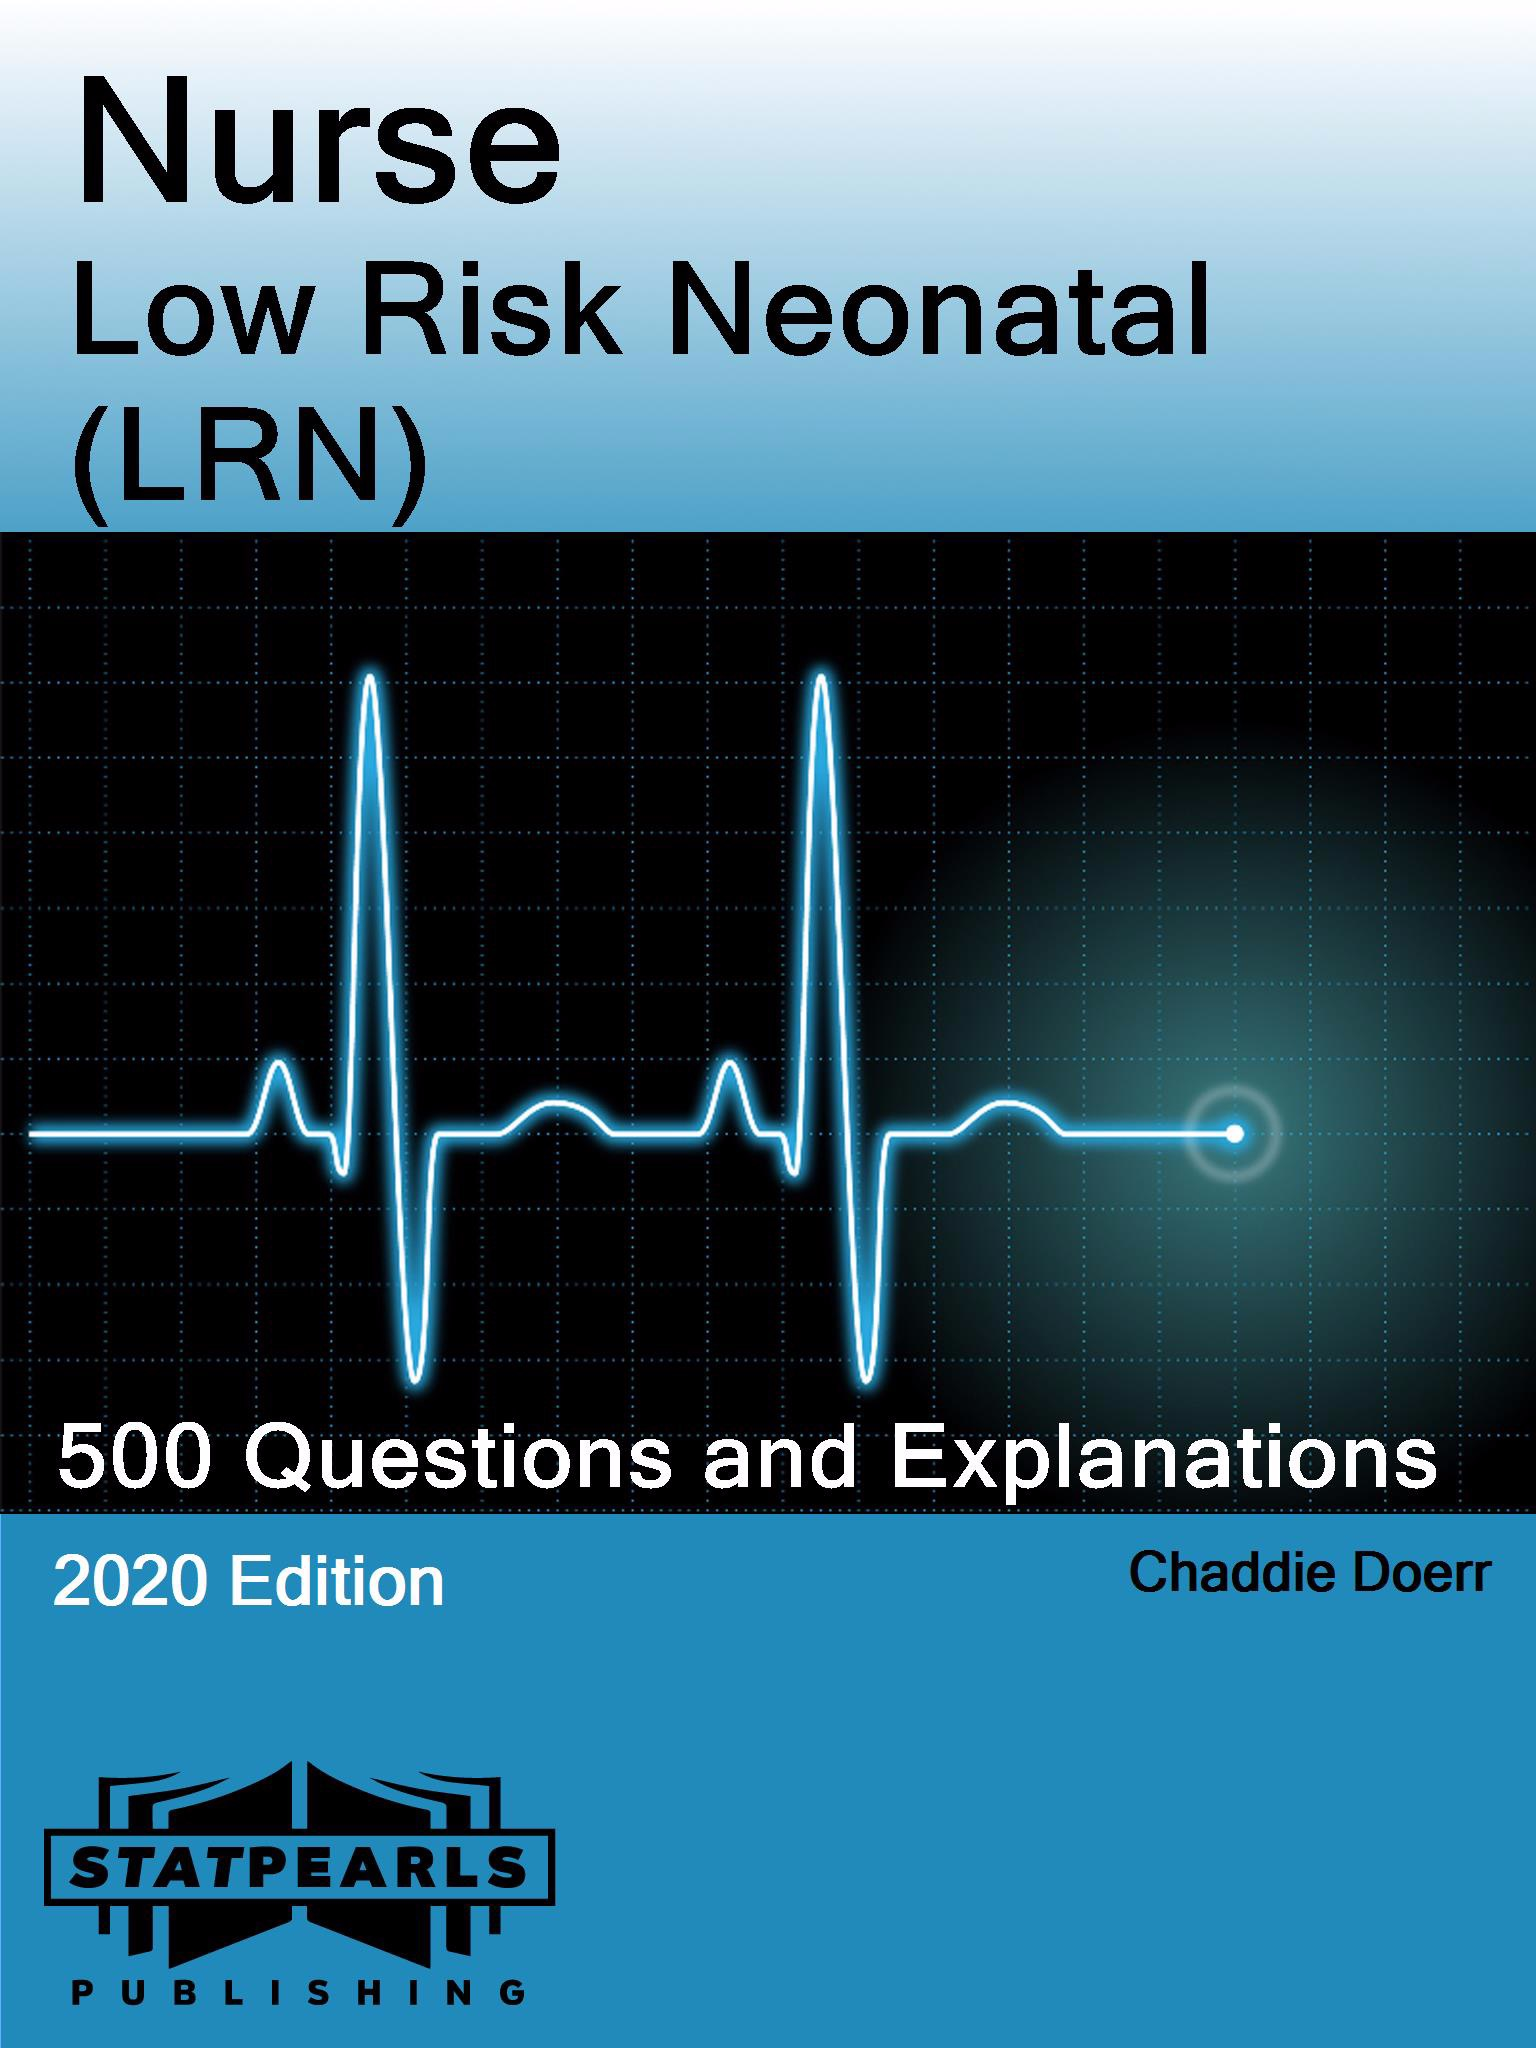 Nurse Low Risk Neonatal (LRN)